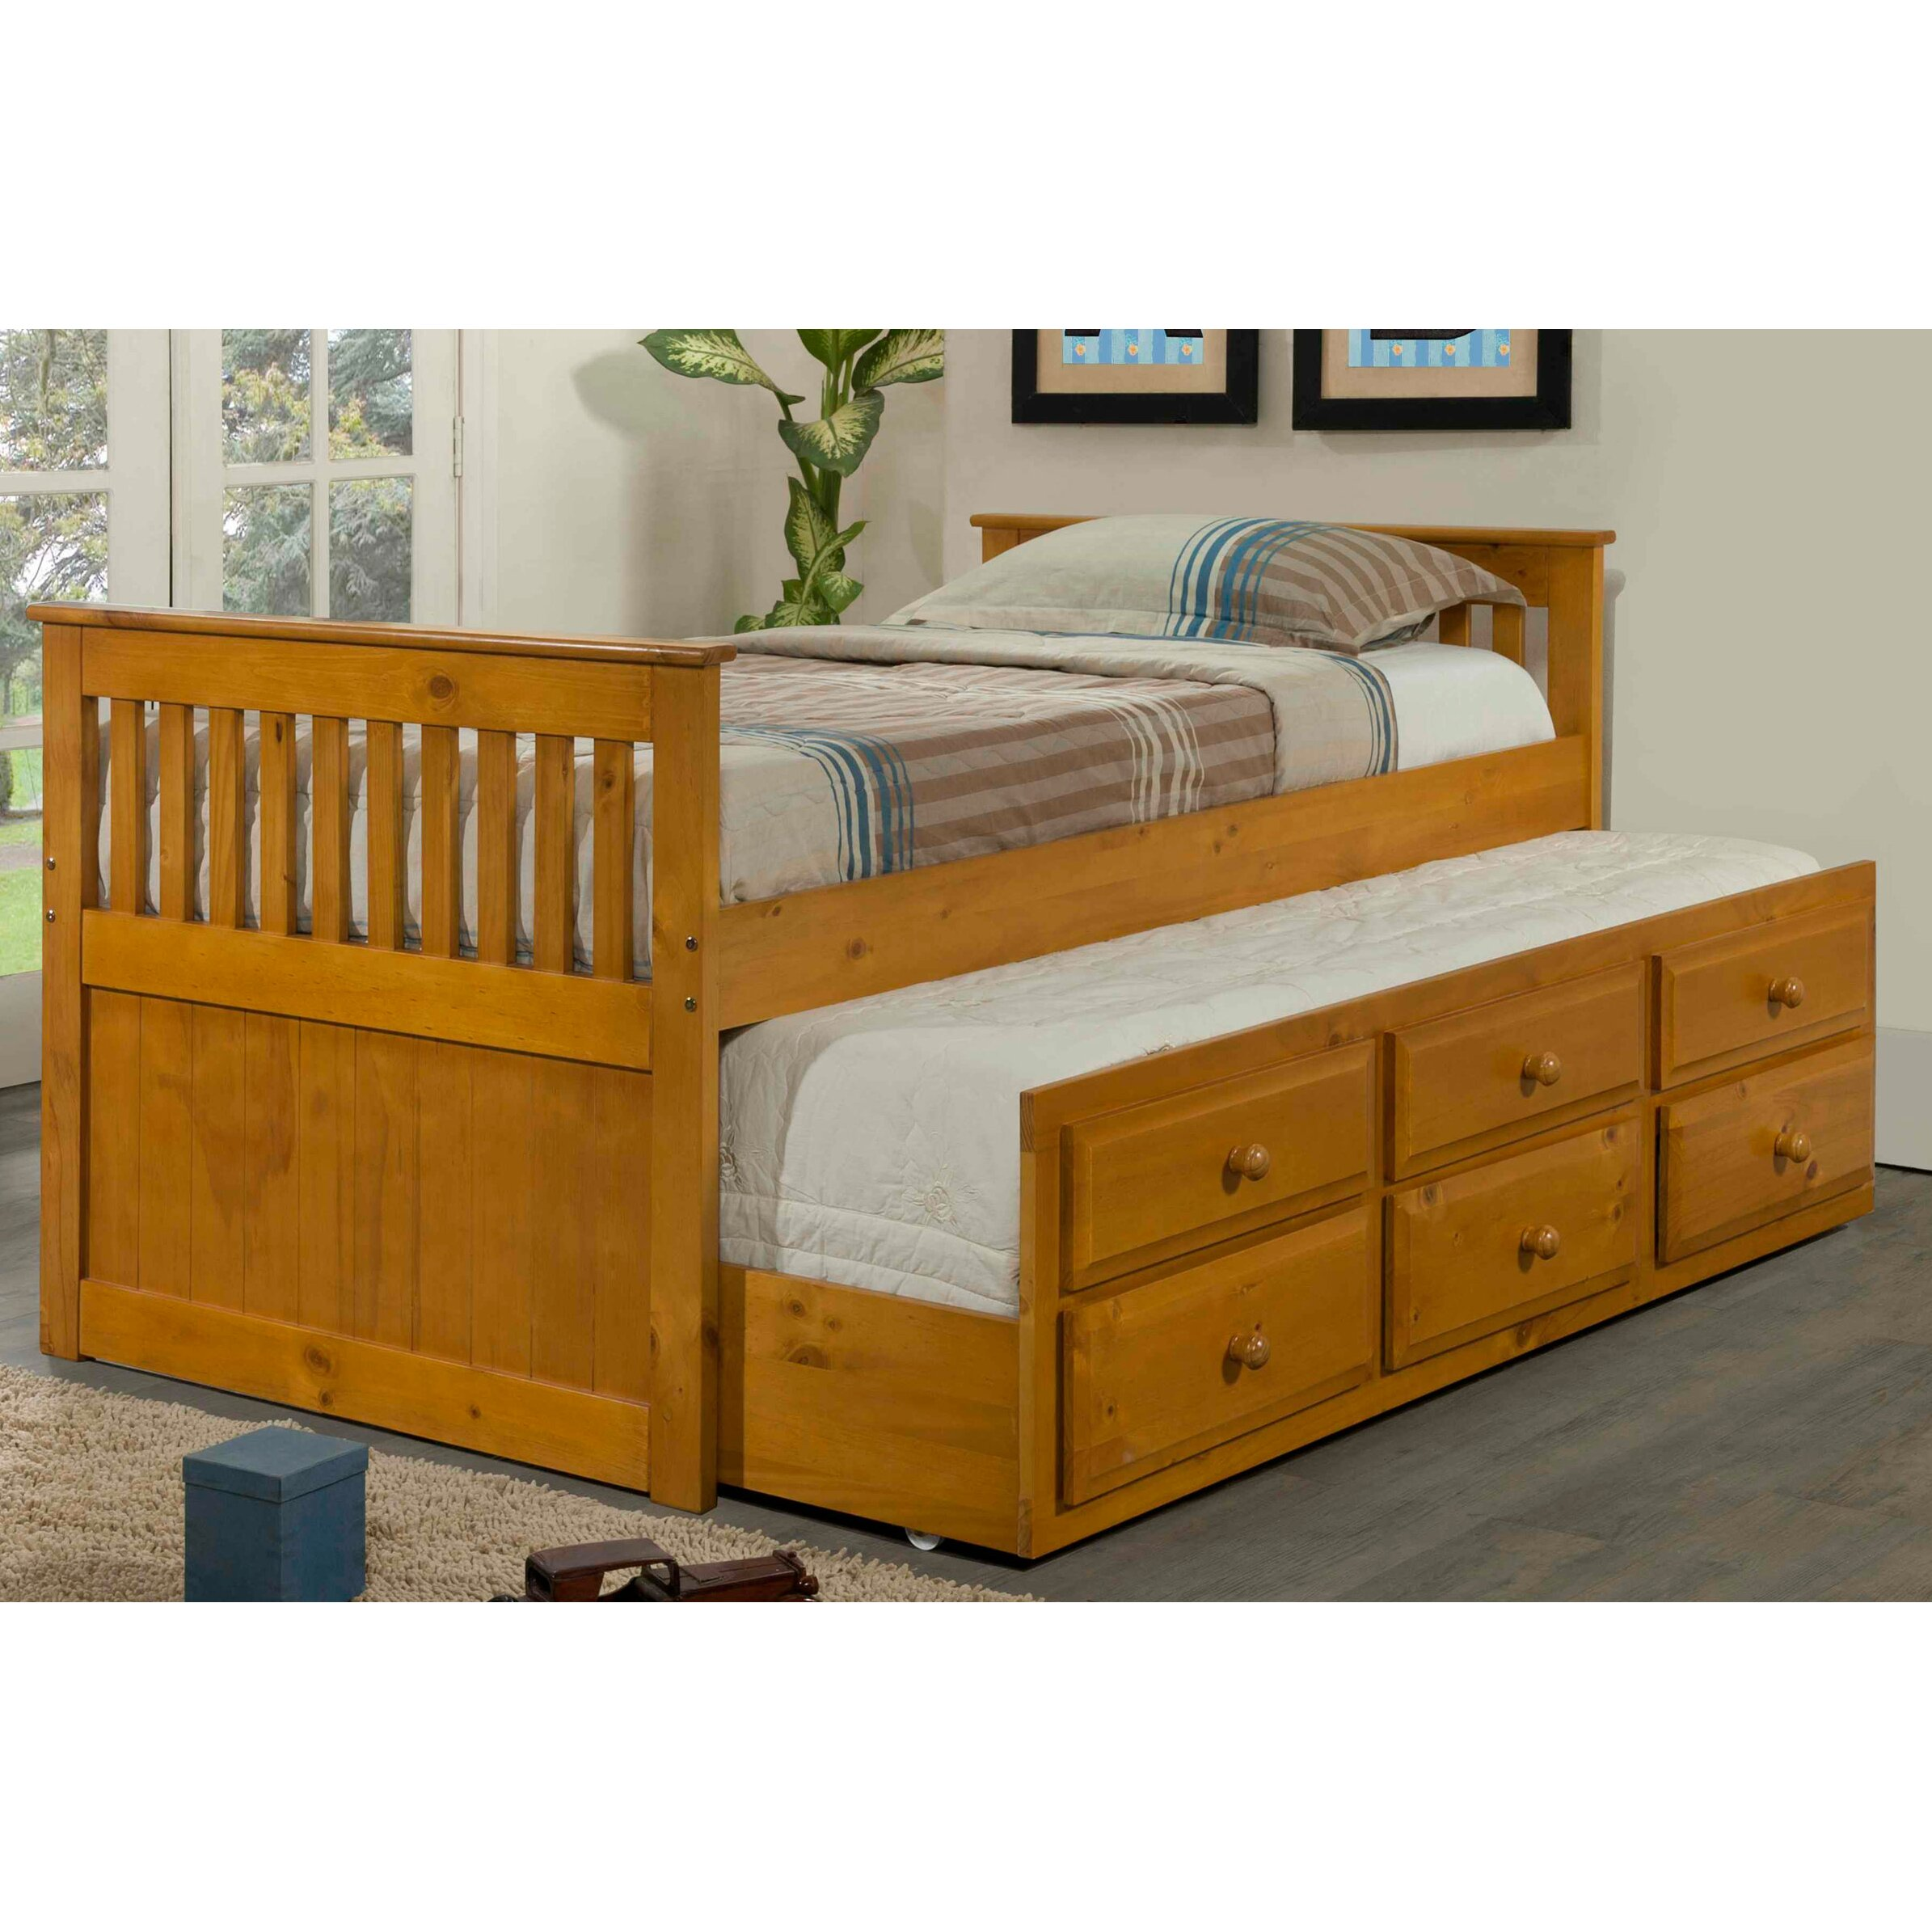 Donco kids captain bed with trundle reviews wayfair for Beds with trundle